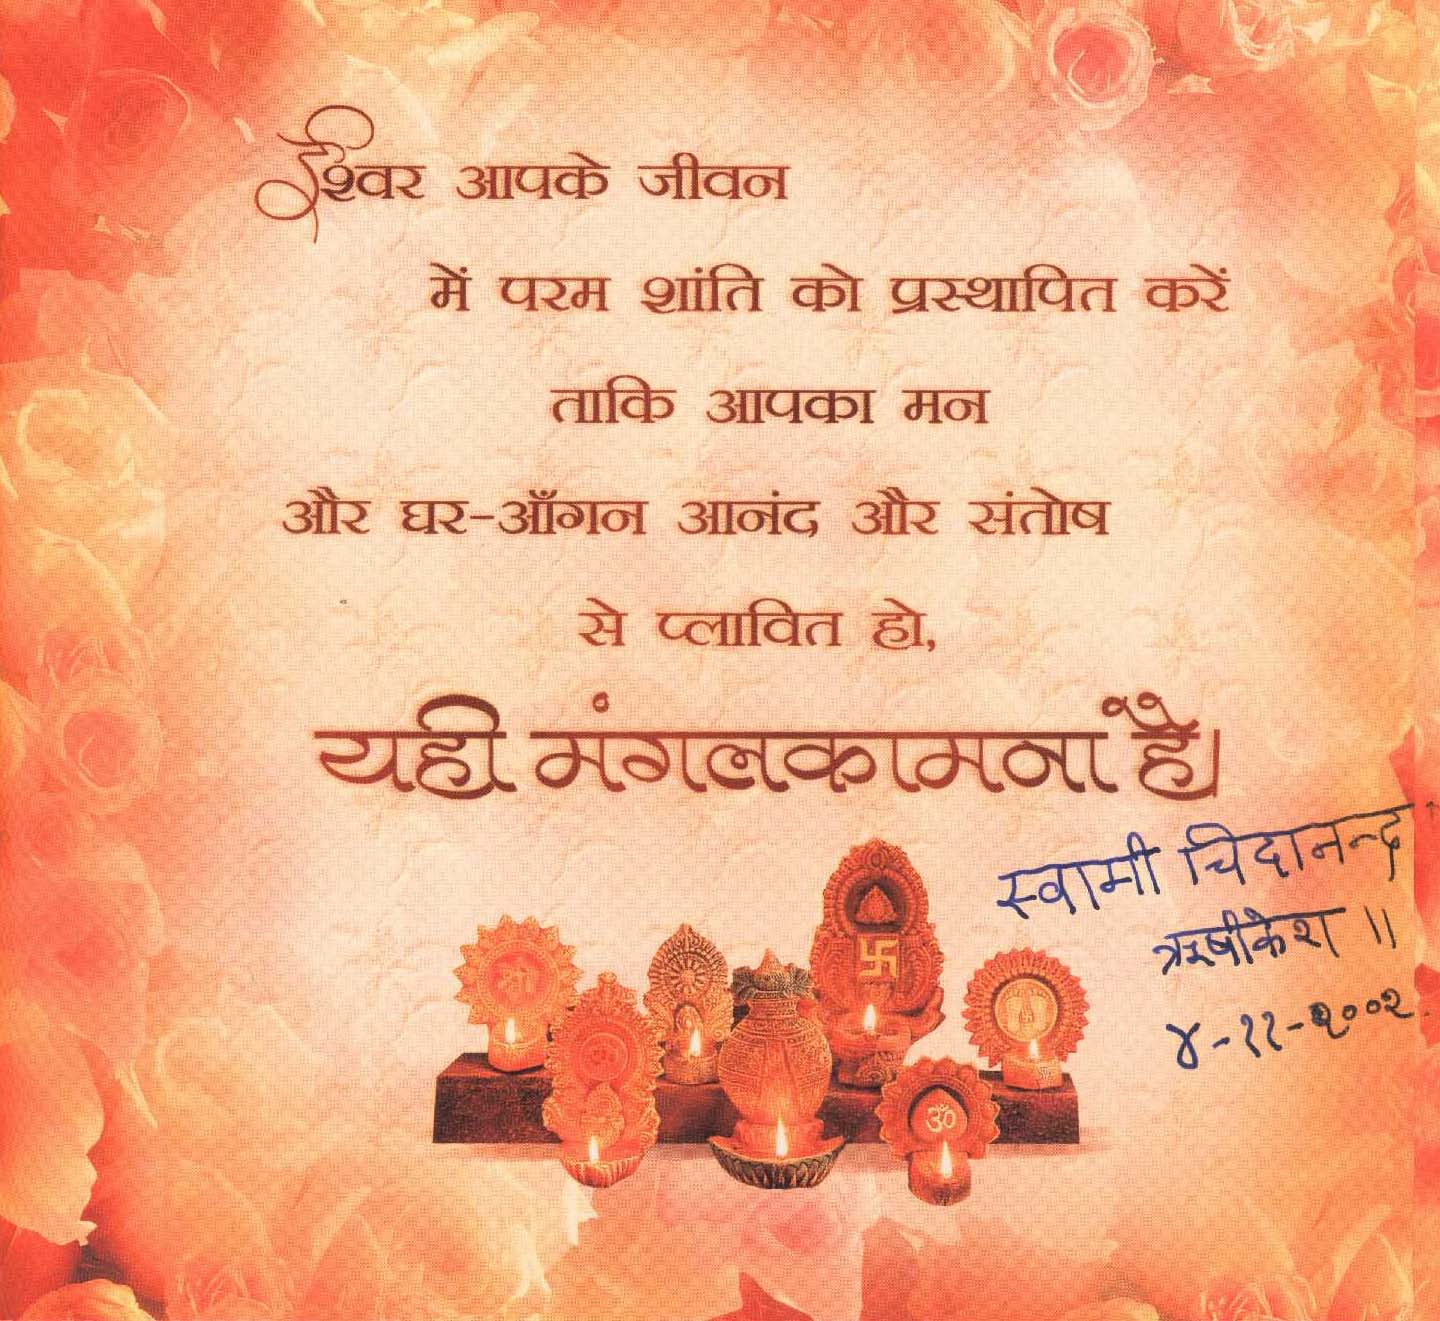 Diwali greetings from swami chidanandaji president of the divine diwali greetings from swami chidanandaji president of the divine life society m4hsunfo